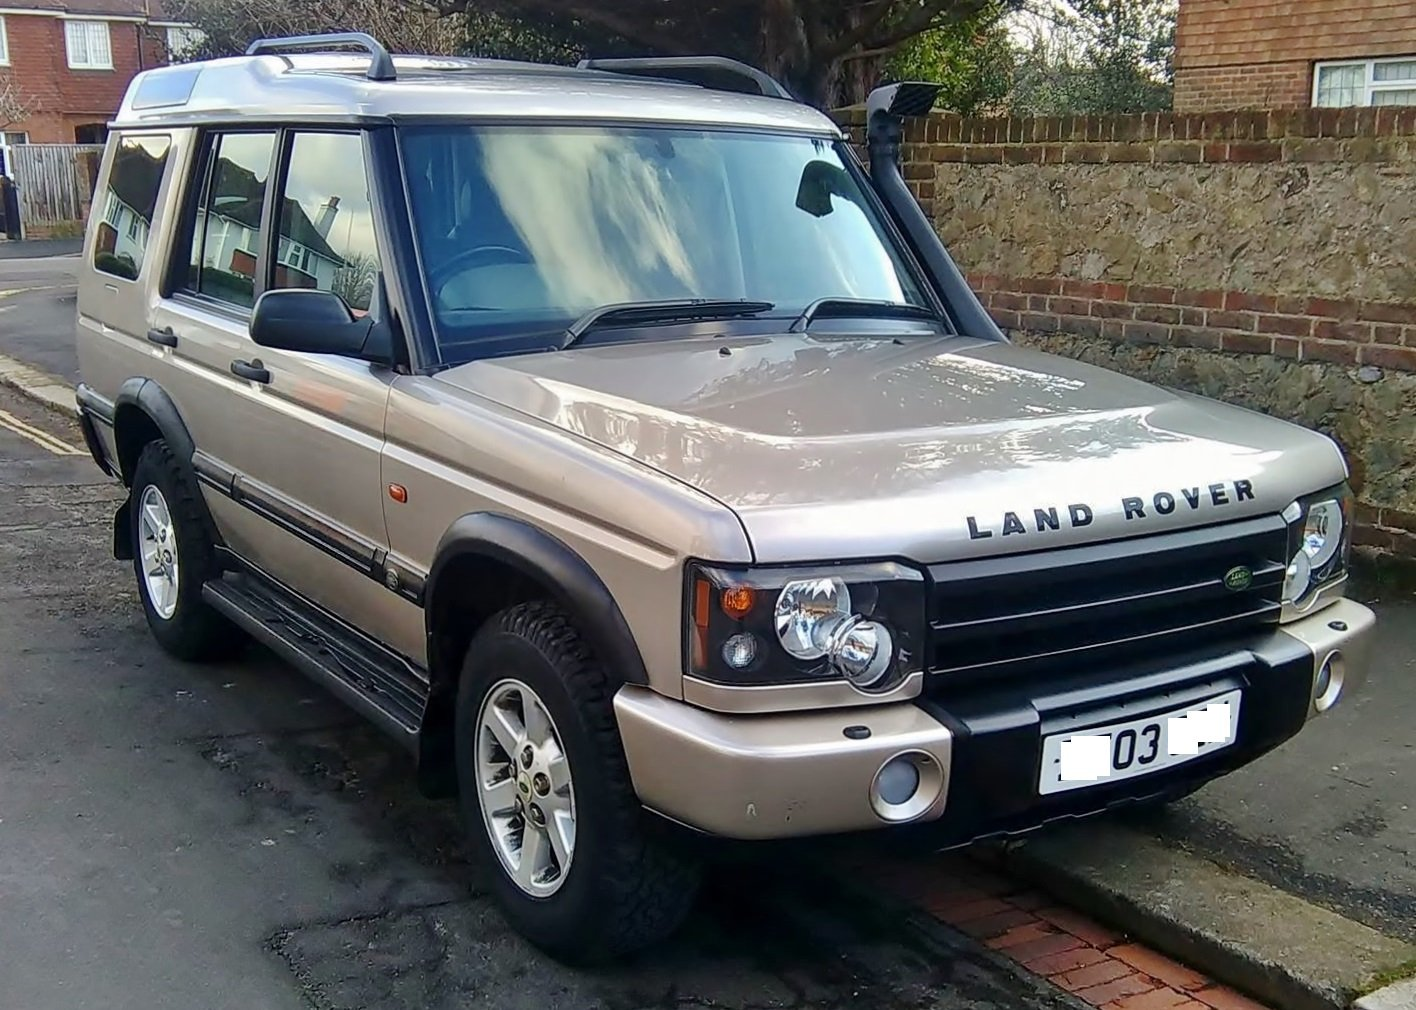 2003 Discovery TD5 PX SWAP Car 4x4 Nissan Toyota Honda For Sale (picture 3 of 6)